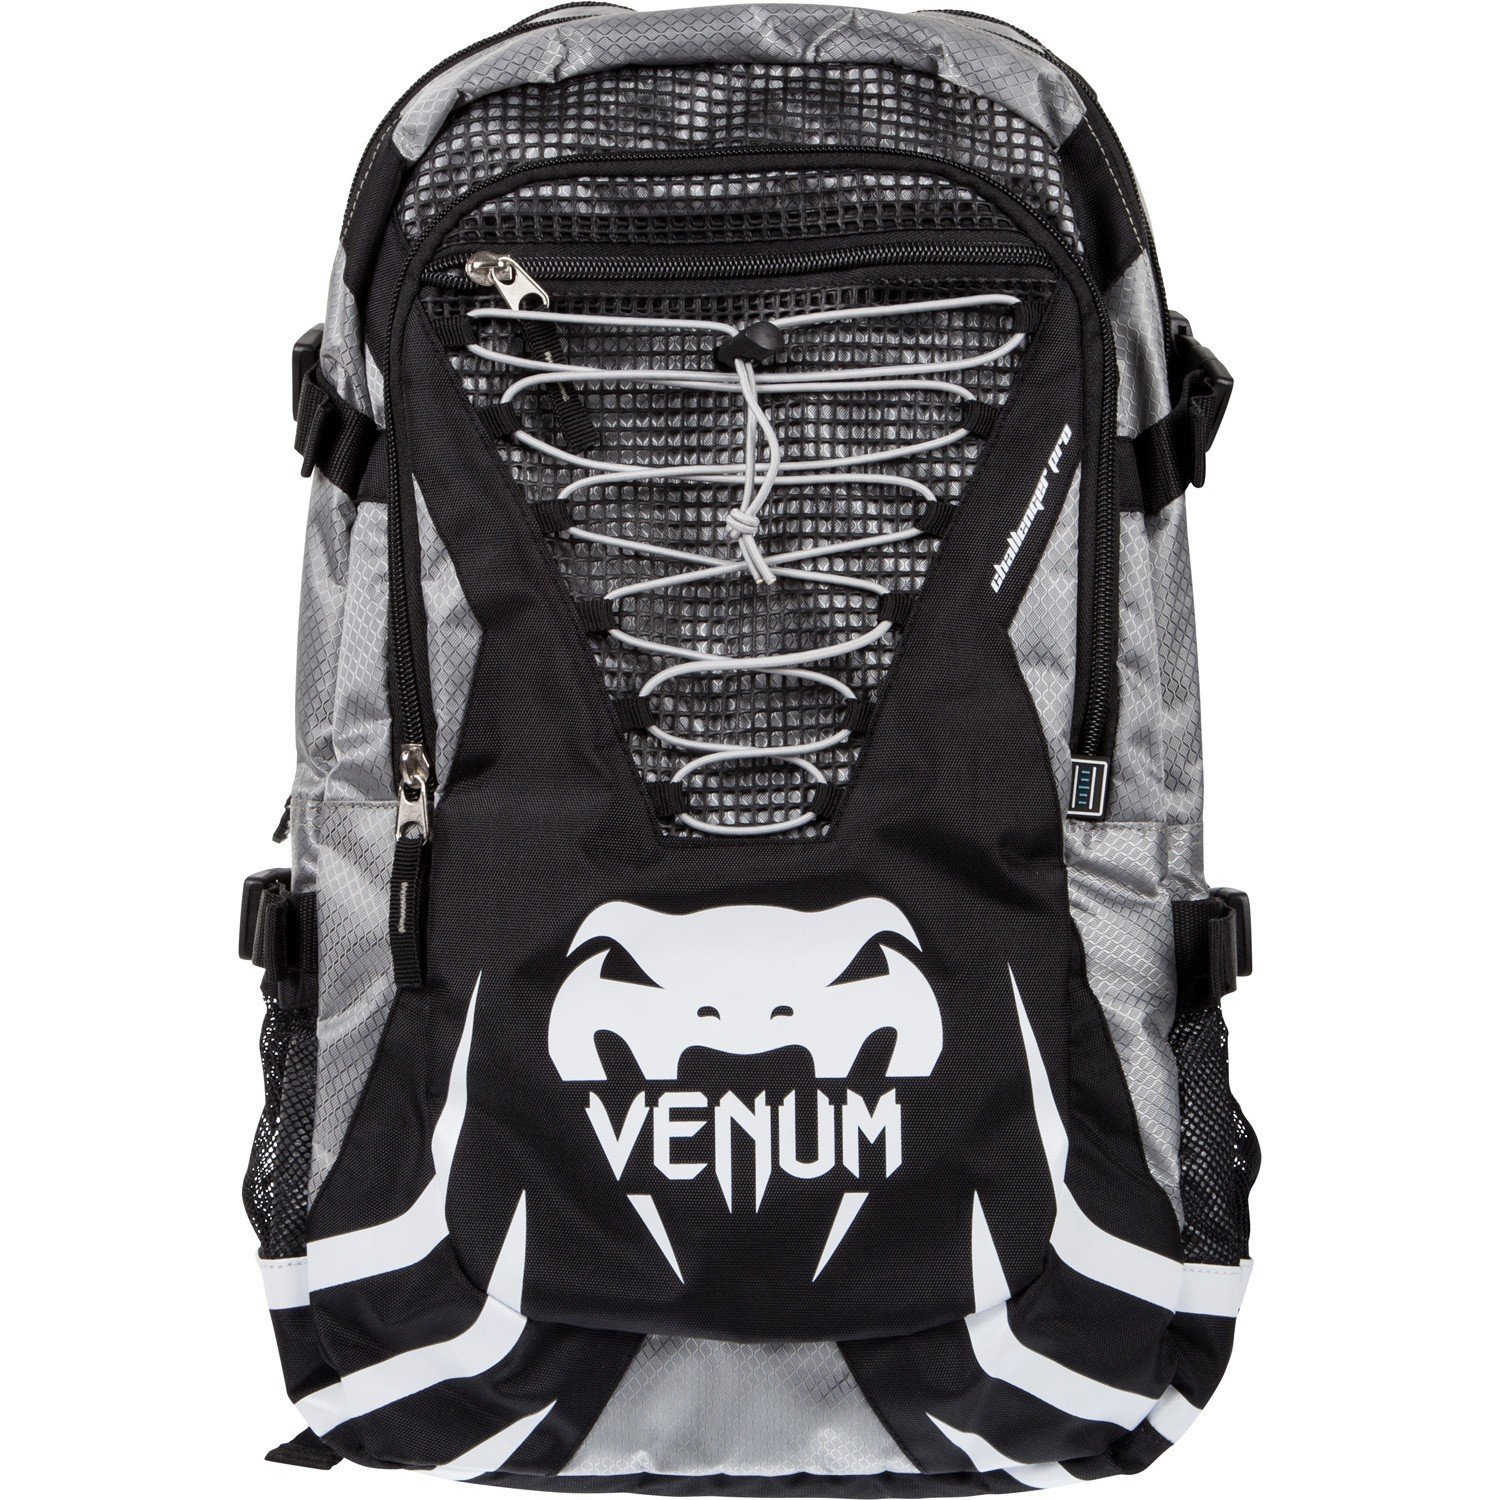 BALO VENUM CHALLENGER PRO BACKPACK - ĐEN/XÁM (VENUM CHALLENGER PRO BACKPACK - BLACK/GREY)